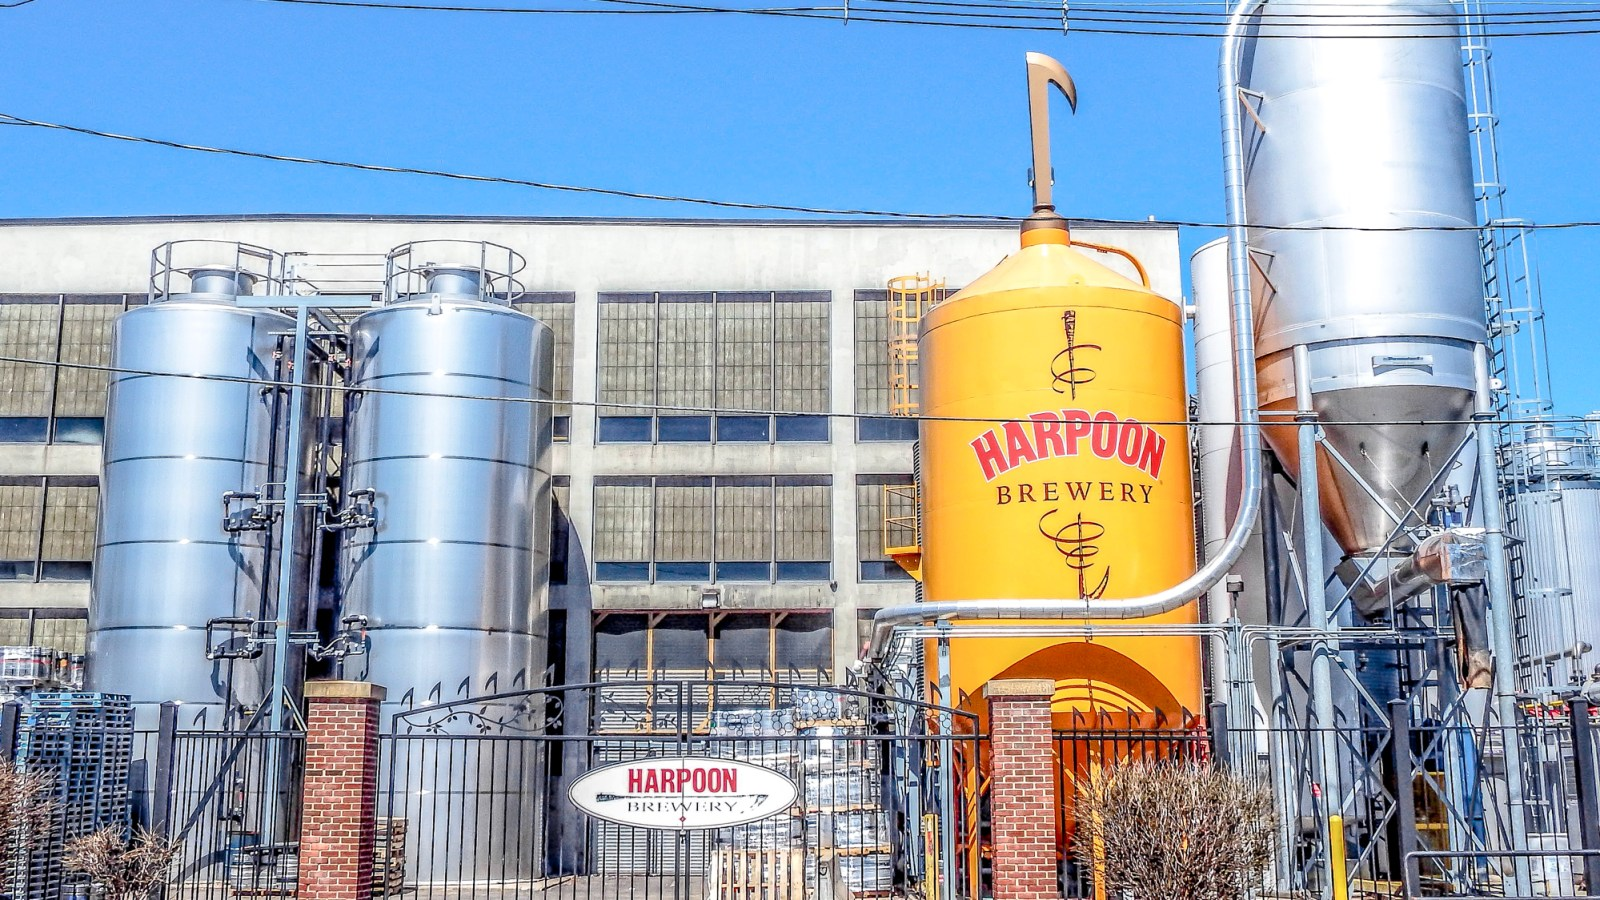 All you need to know for your trip to Boston's Harpoon Brewery. Enjoy a fast and furious beer tasting, learn beer things, and stuff your face with freaking delicious soft pretzels.